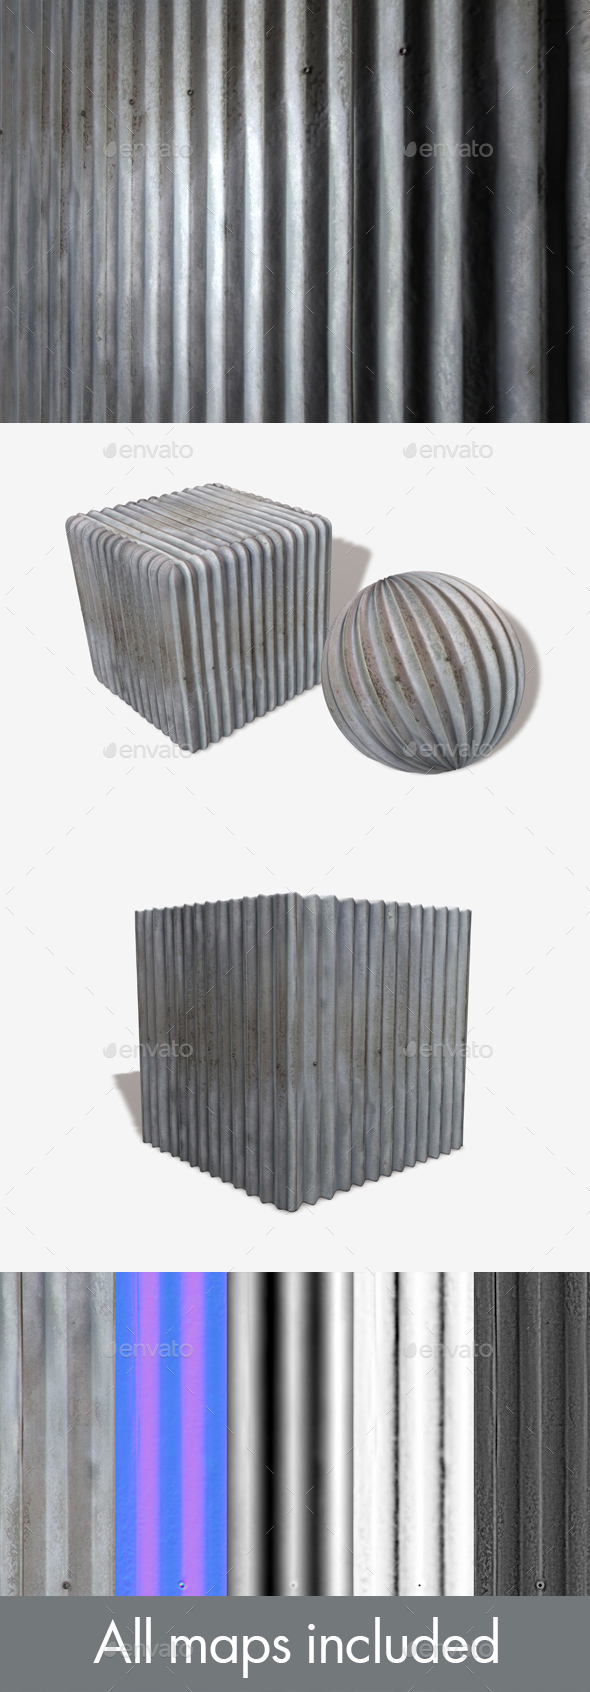 Metal Panel Seamless Texture - 3DOcean Item for Sale